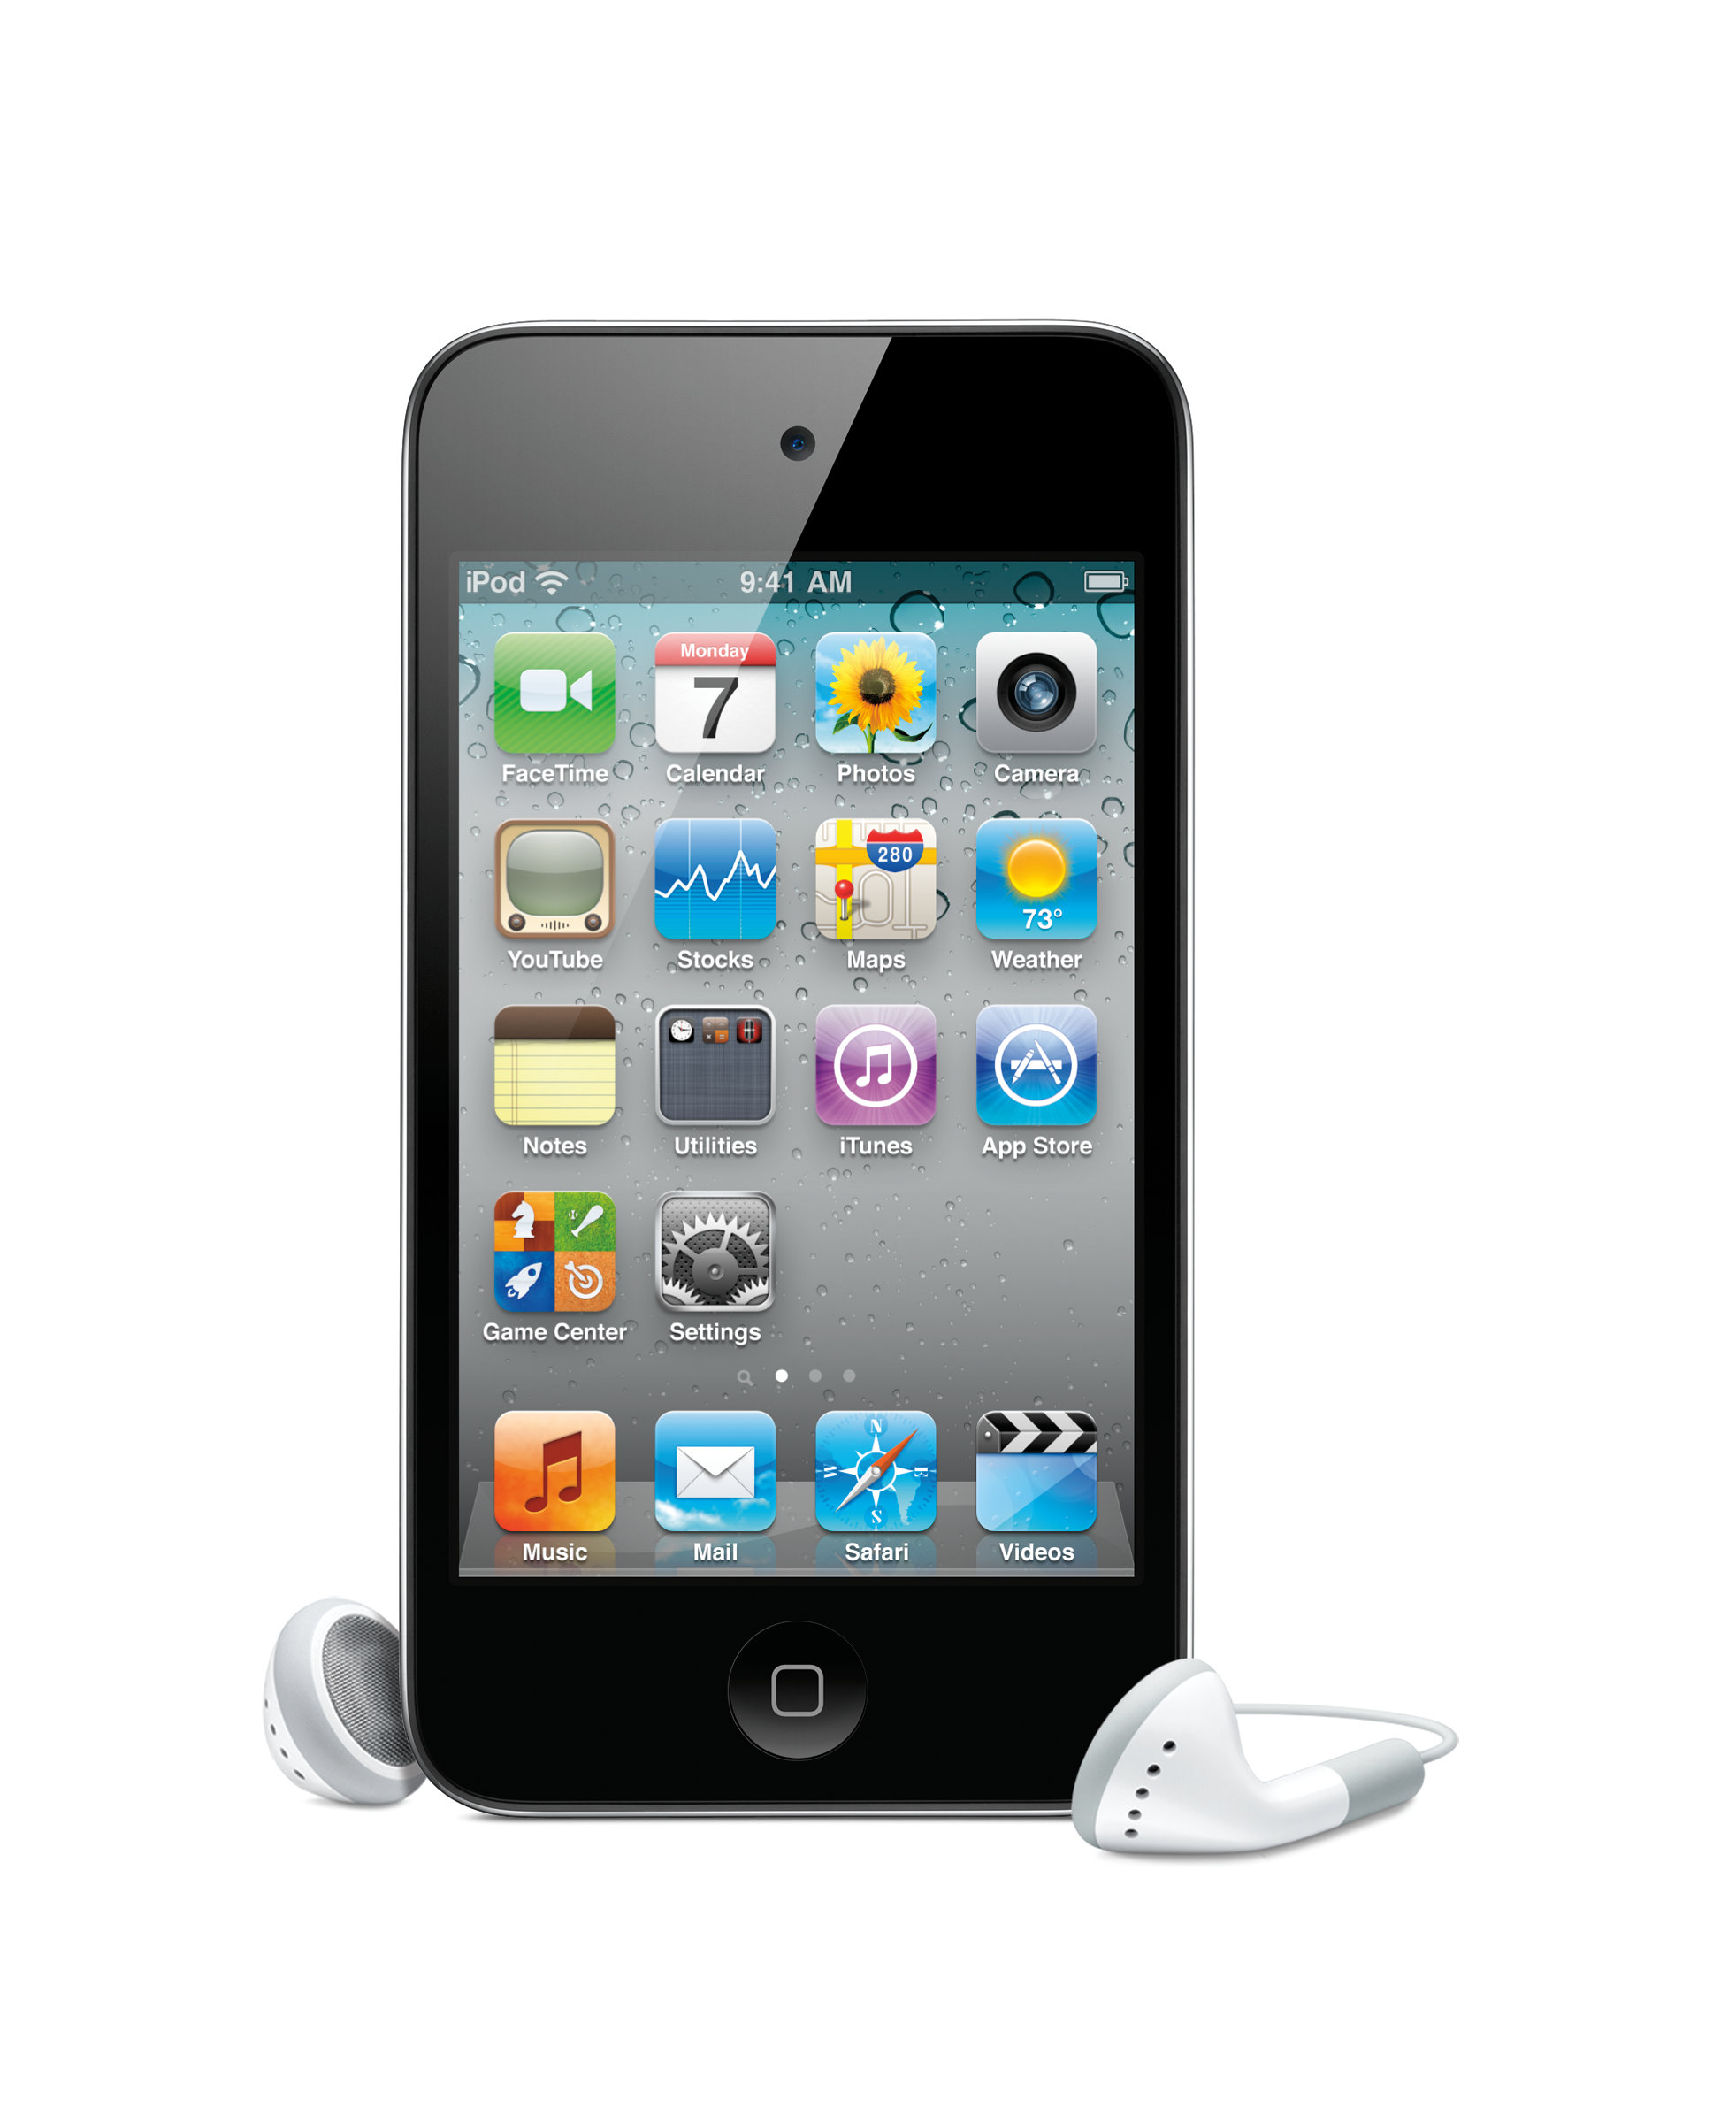 Apple Introduces New iPod Touch